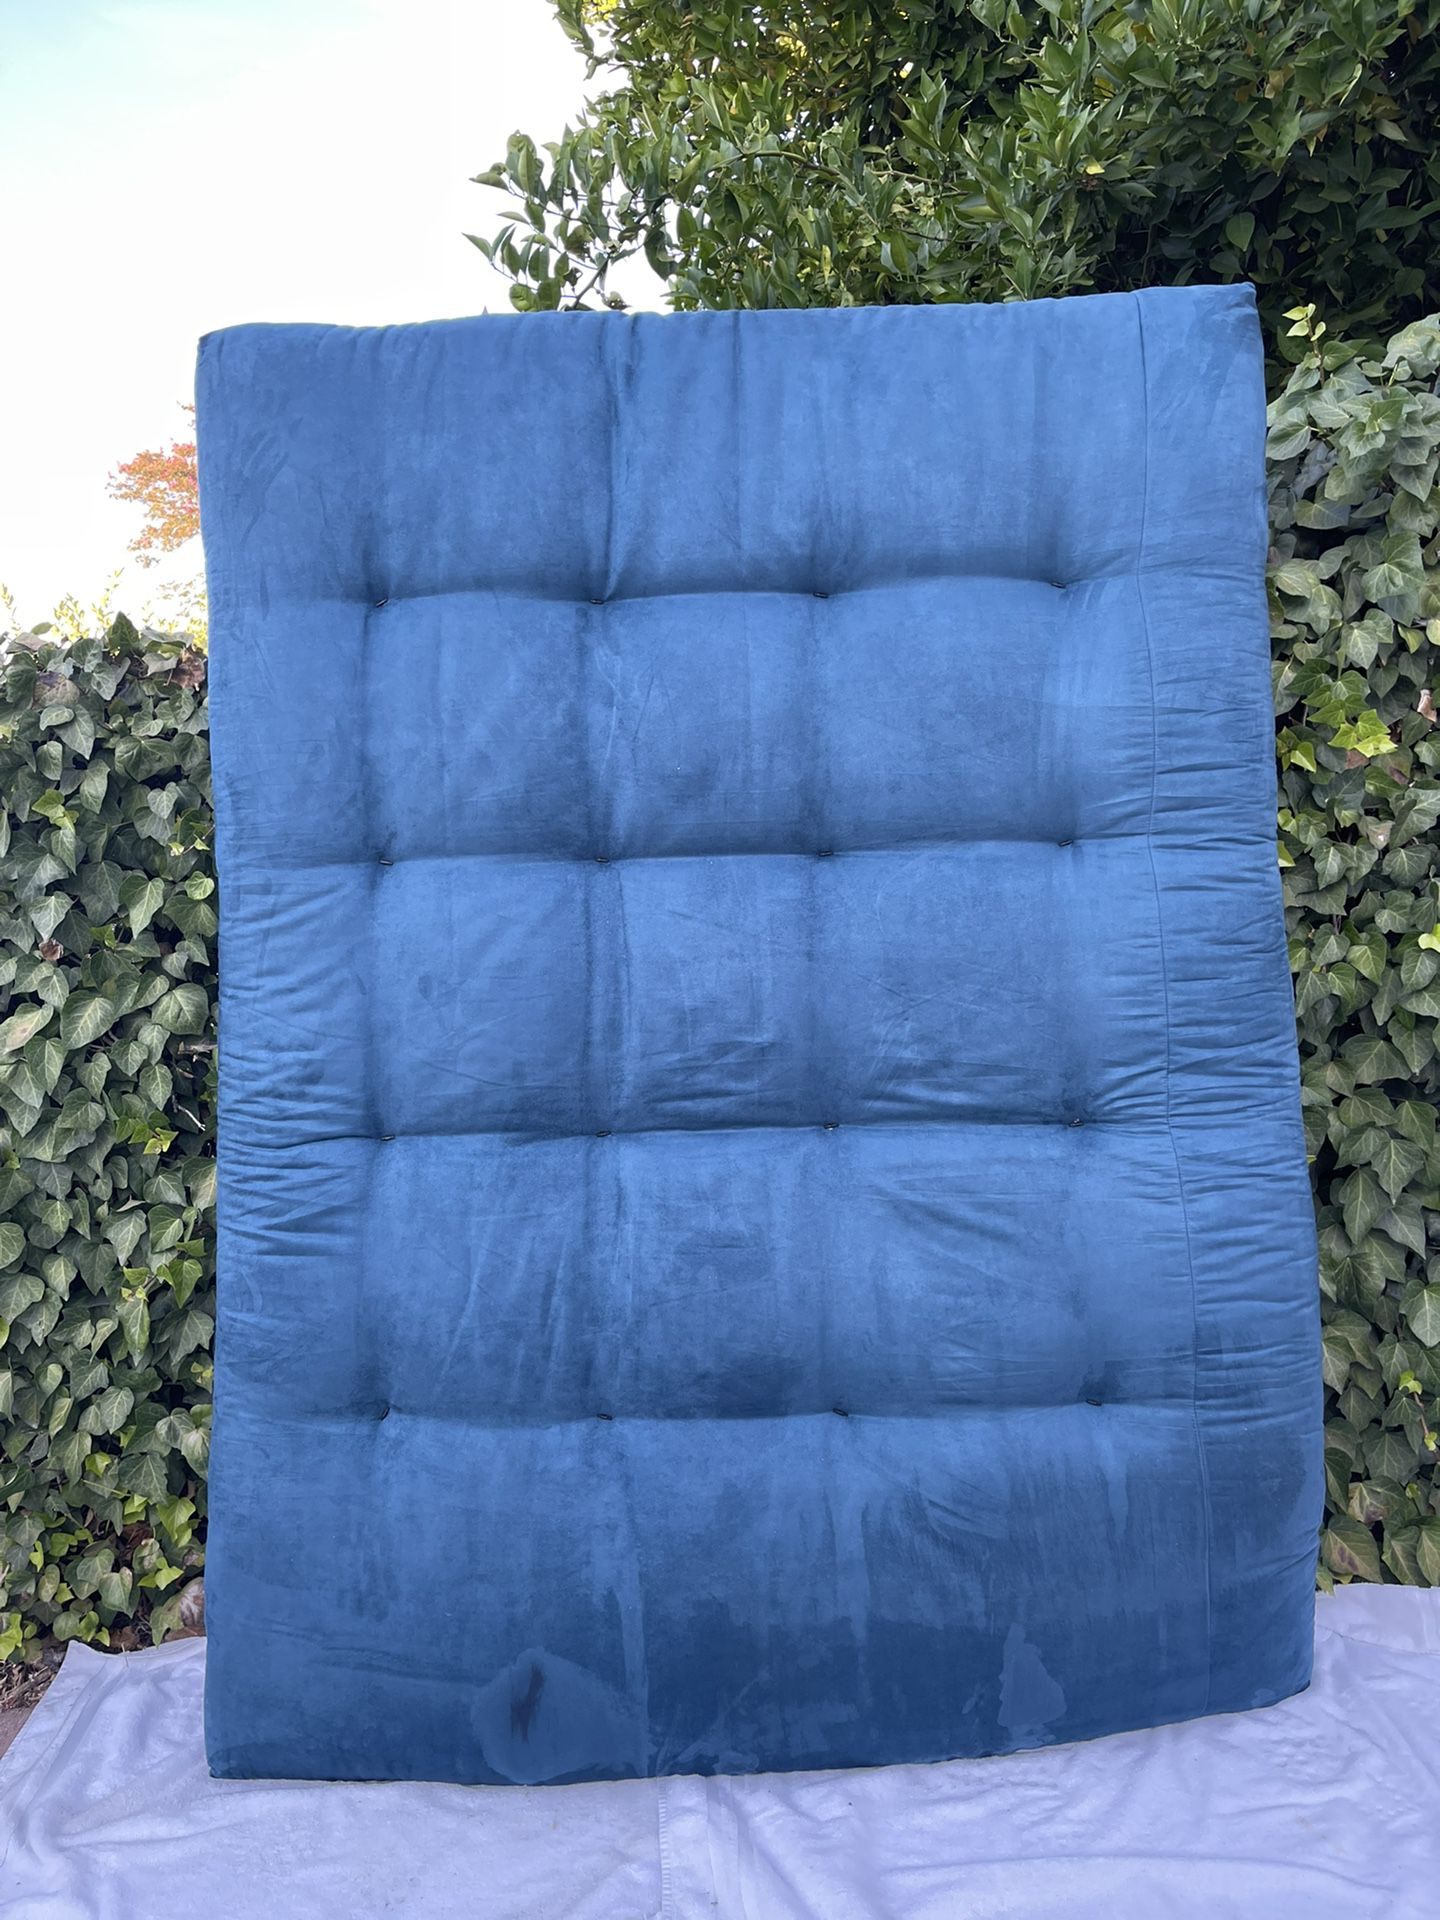 Brand New, In Wraping Queen Size Sofa Bed Mattress